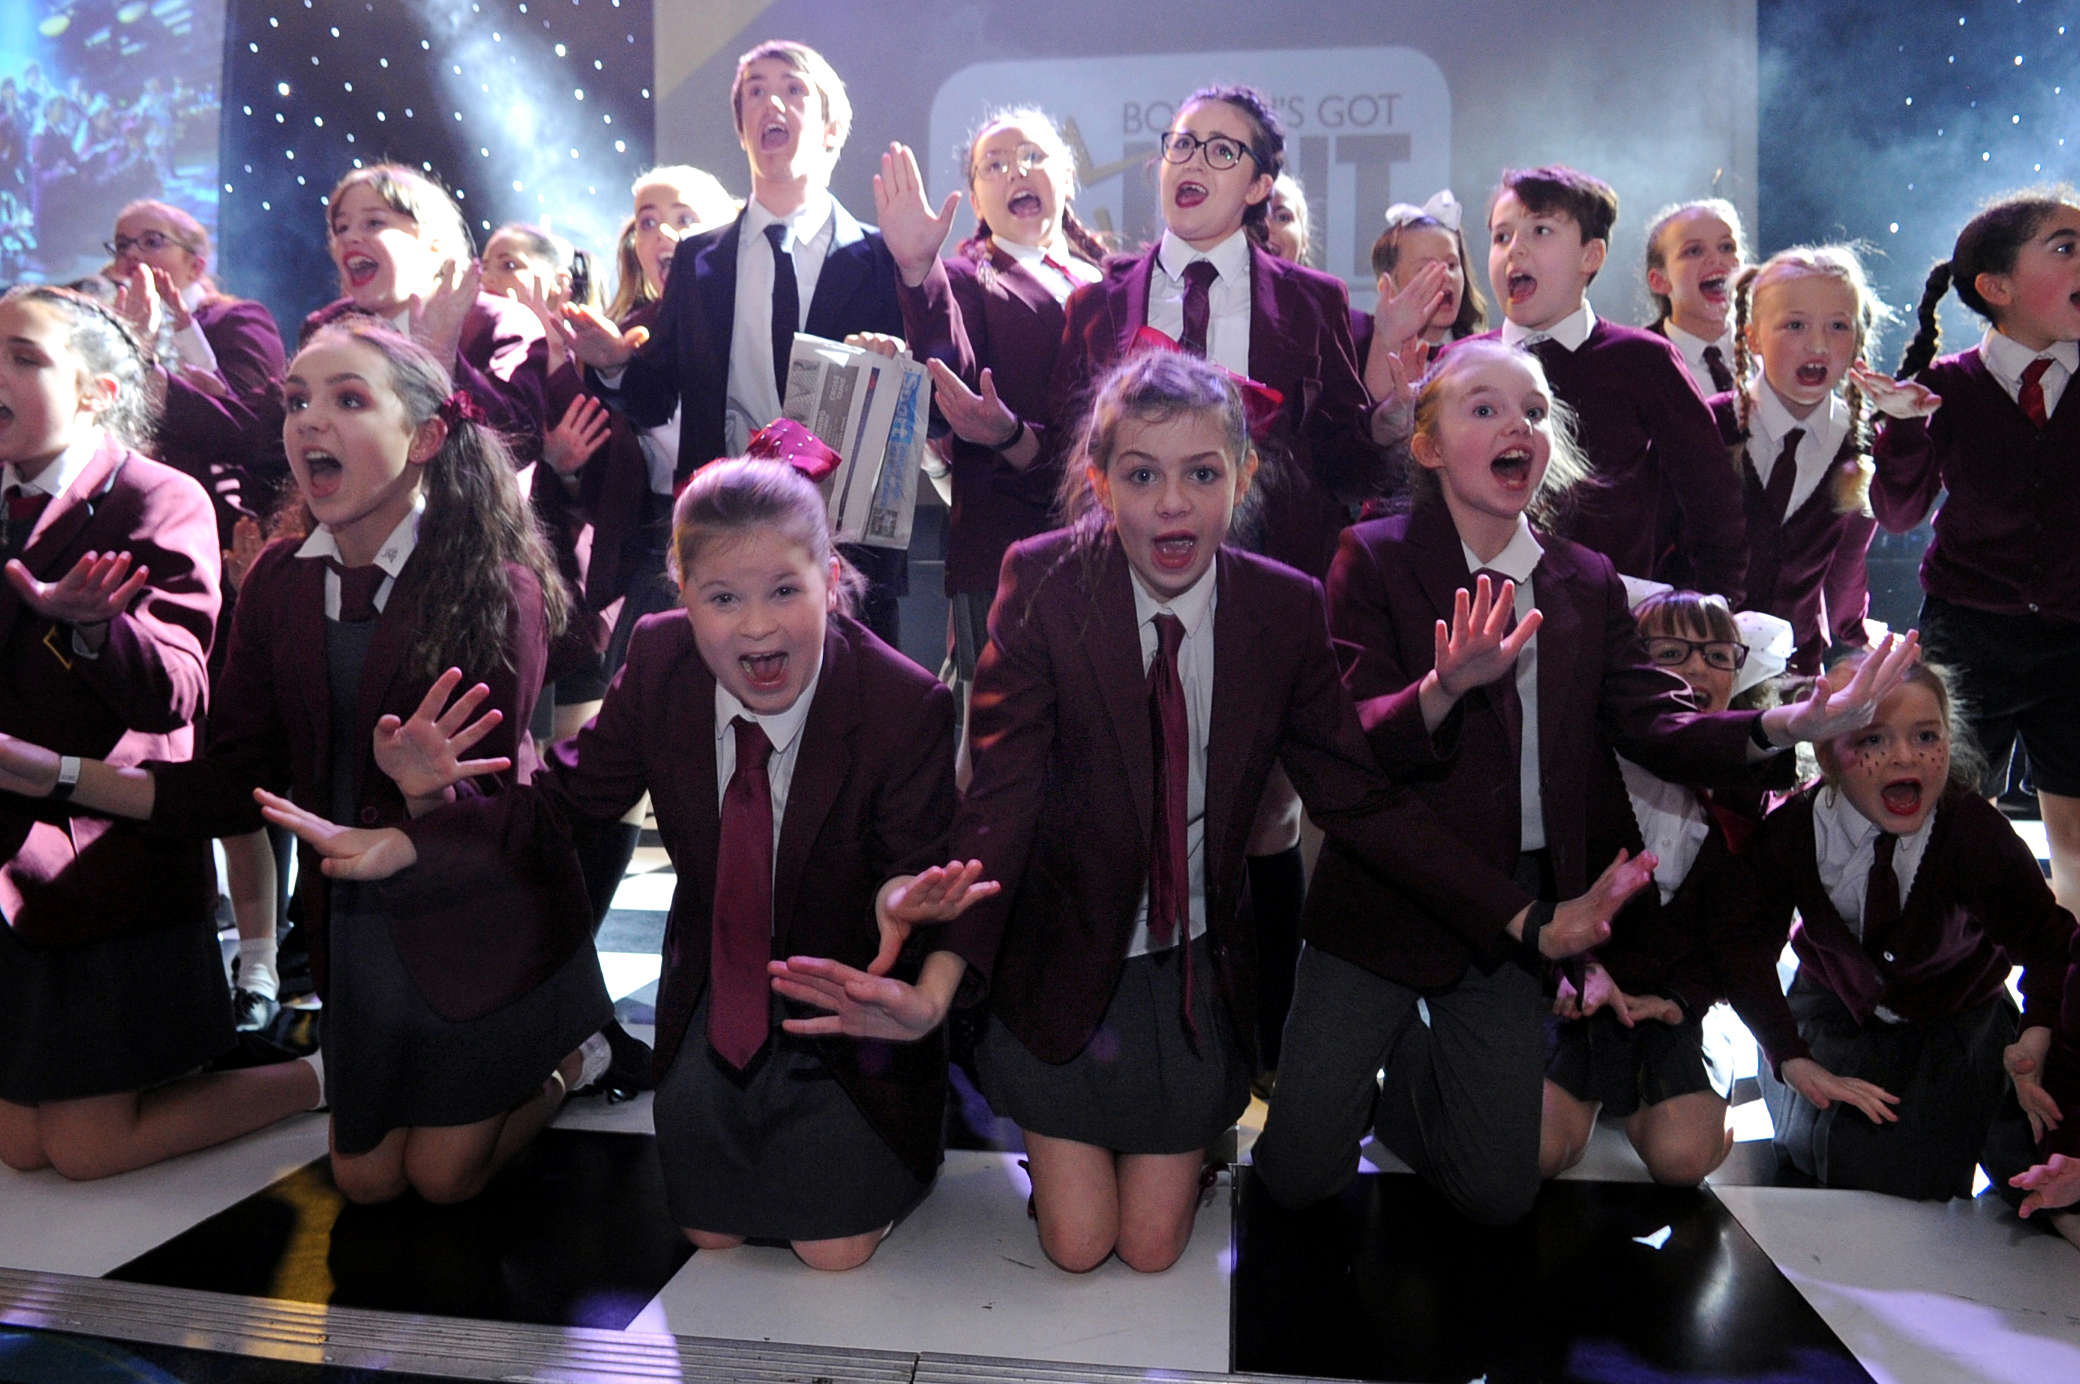 35 talented performers land 2nd place at Bolton's Got Talent